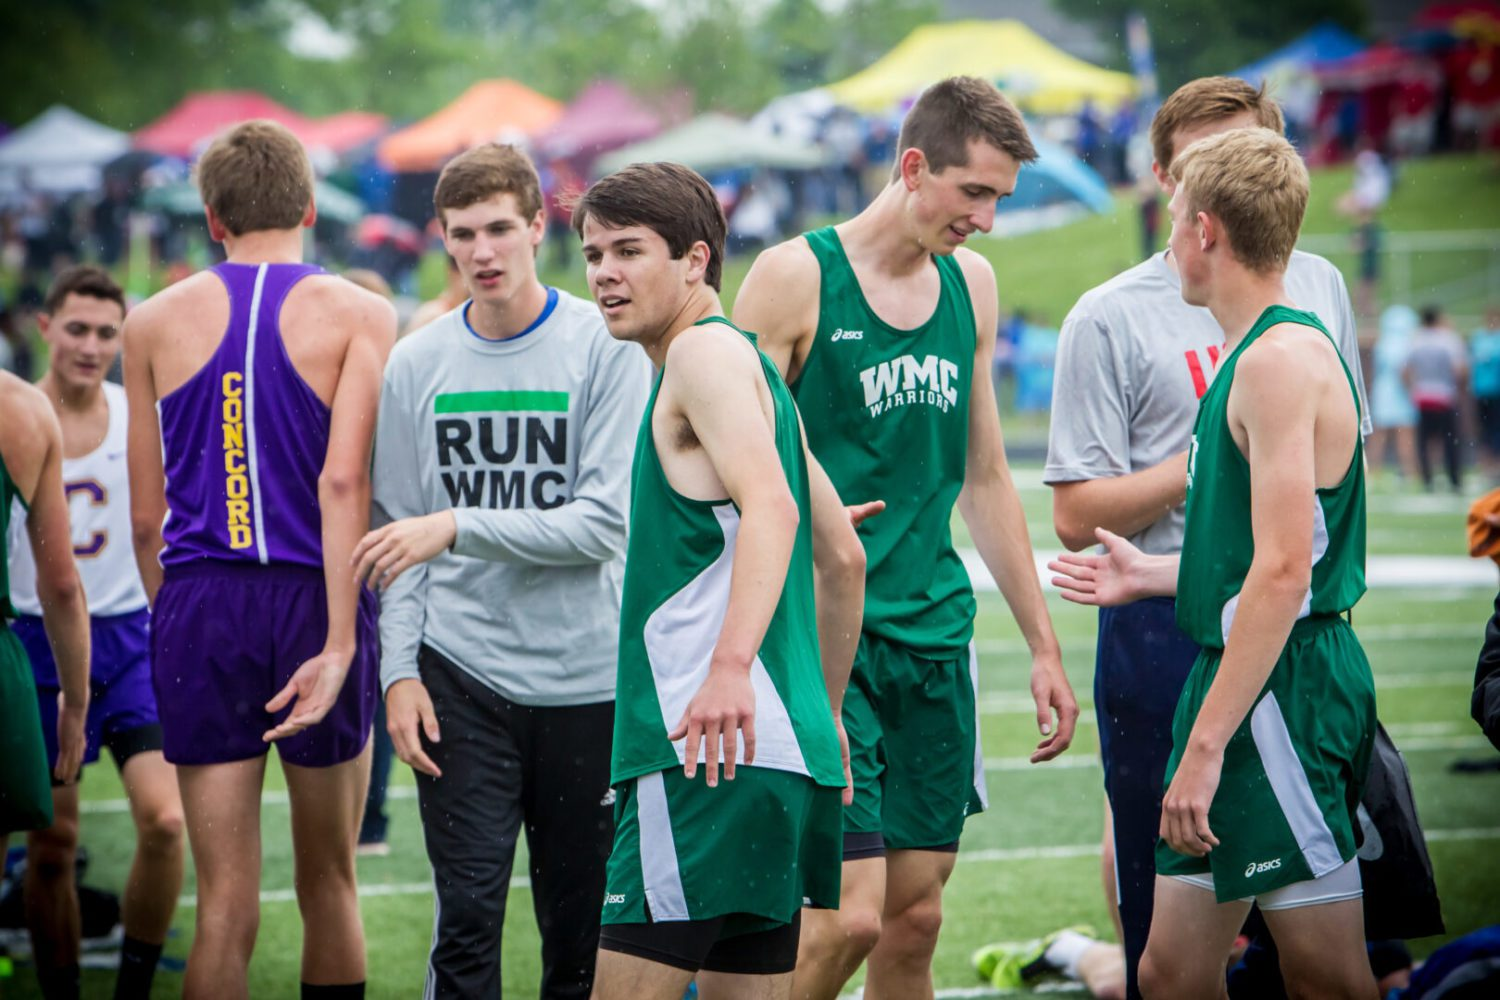 Western Michigan Christian boys track team comes within a point and a stride of winning a state title